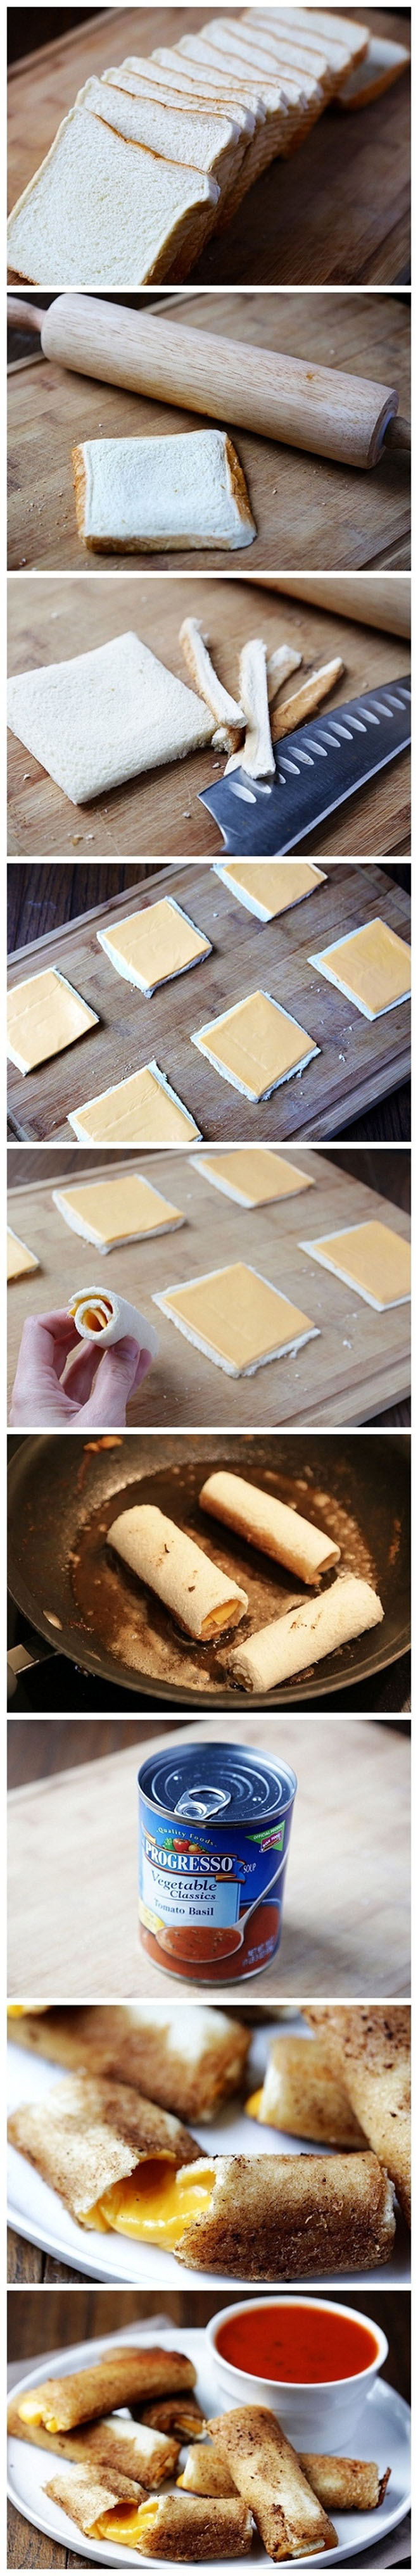 24 Brilliant Food Hacks That Will Change The Way You Cook. Thank Me Later For #9!